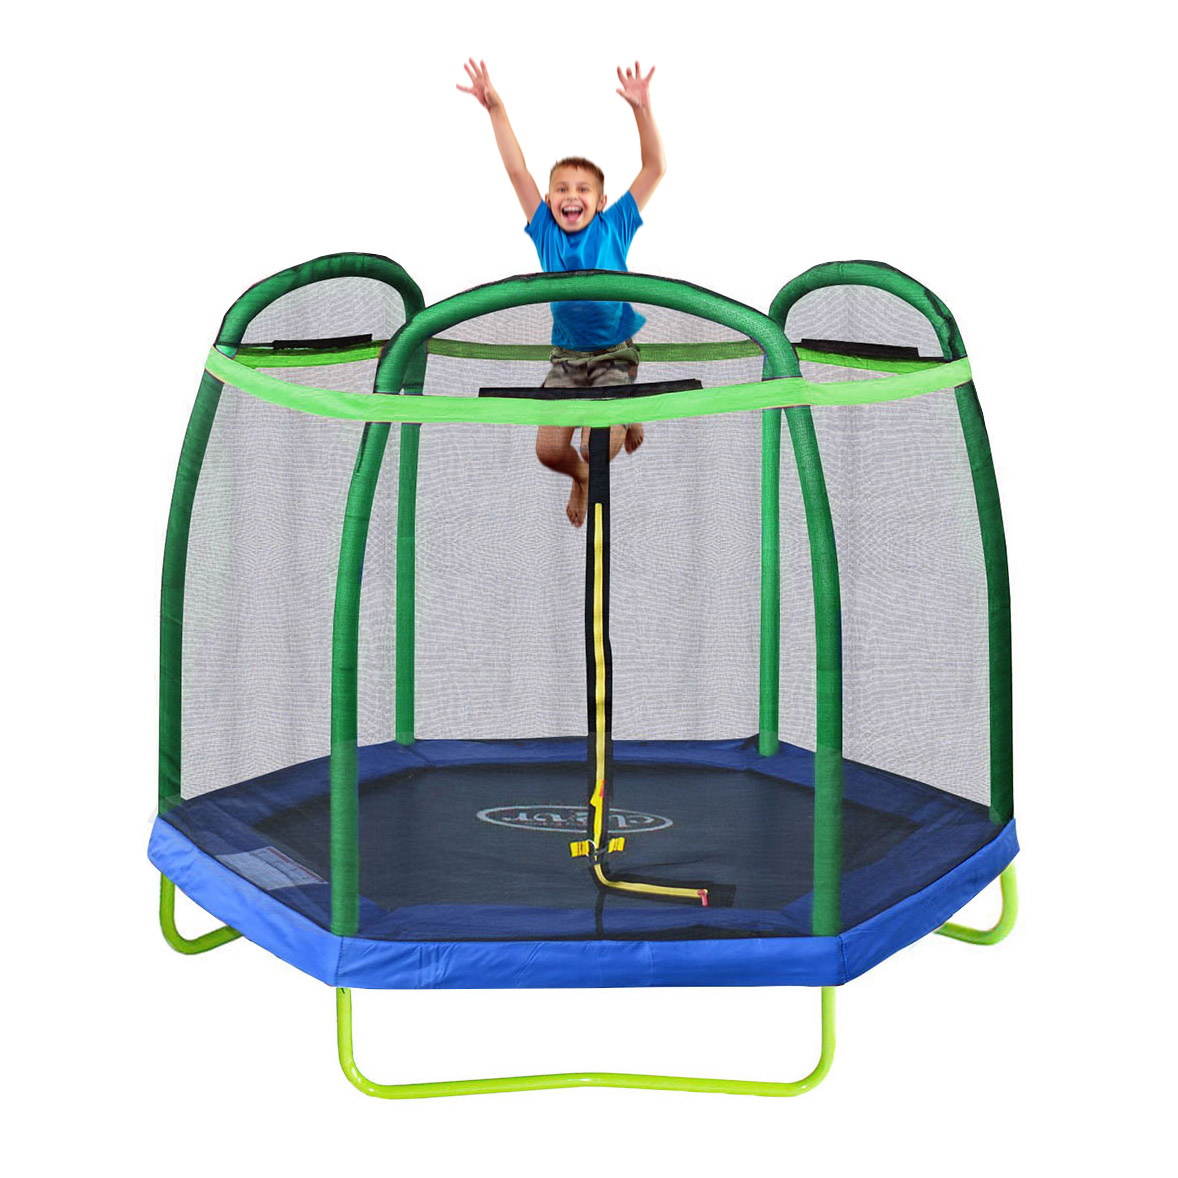 Zupapa Round 14ft Trampoline Frame Safety Enclosure Spring: New Clevr 7FT Trampoline Bounce Jump Safety Enclosure Net